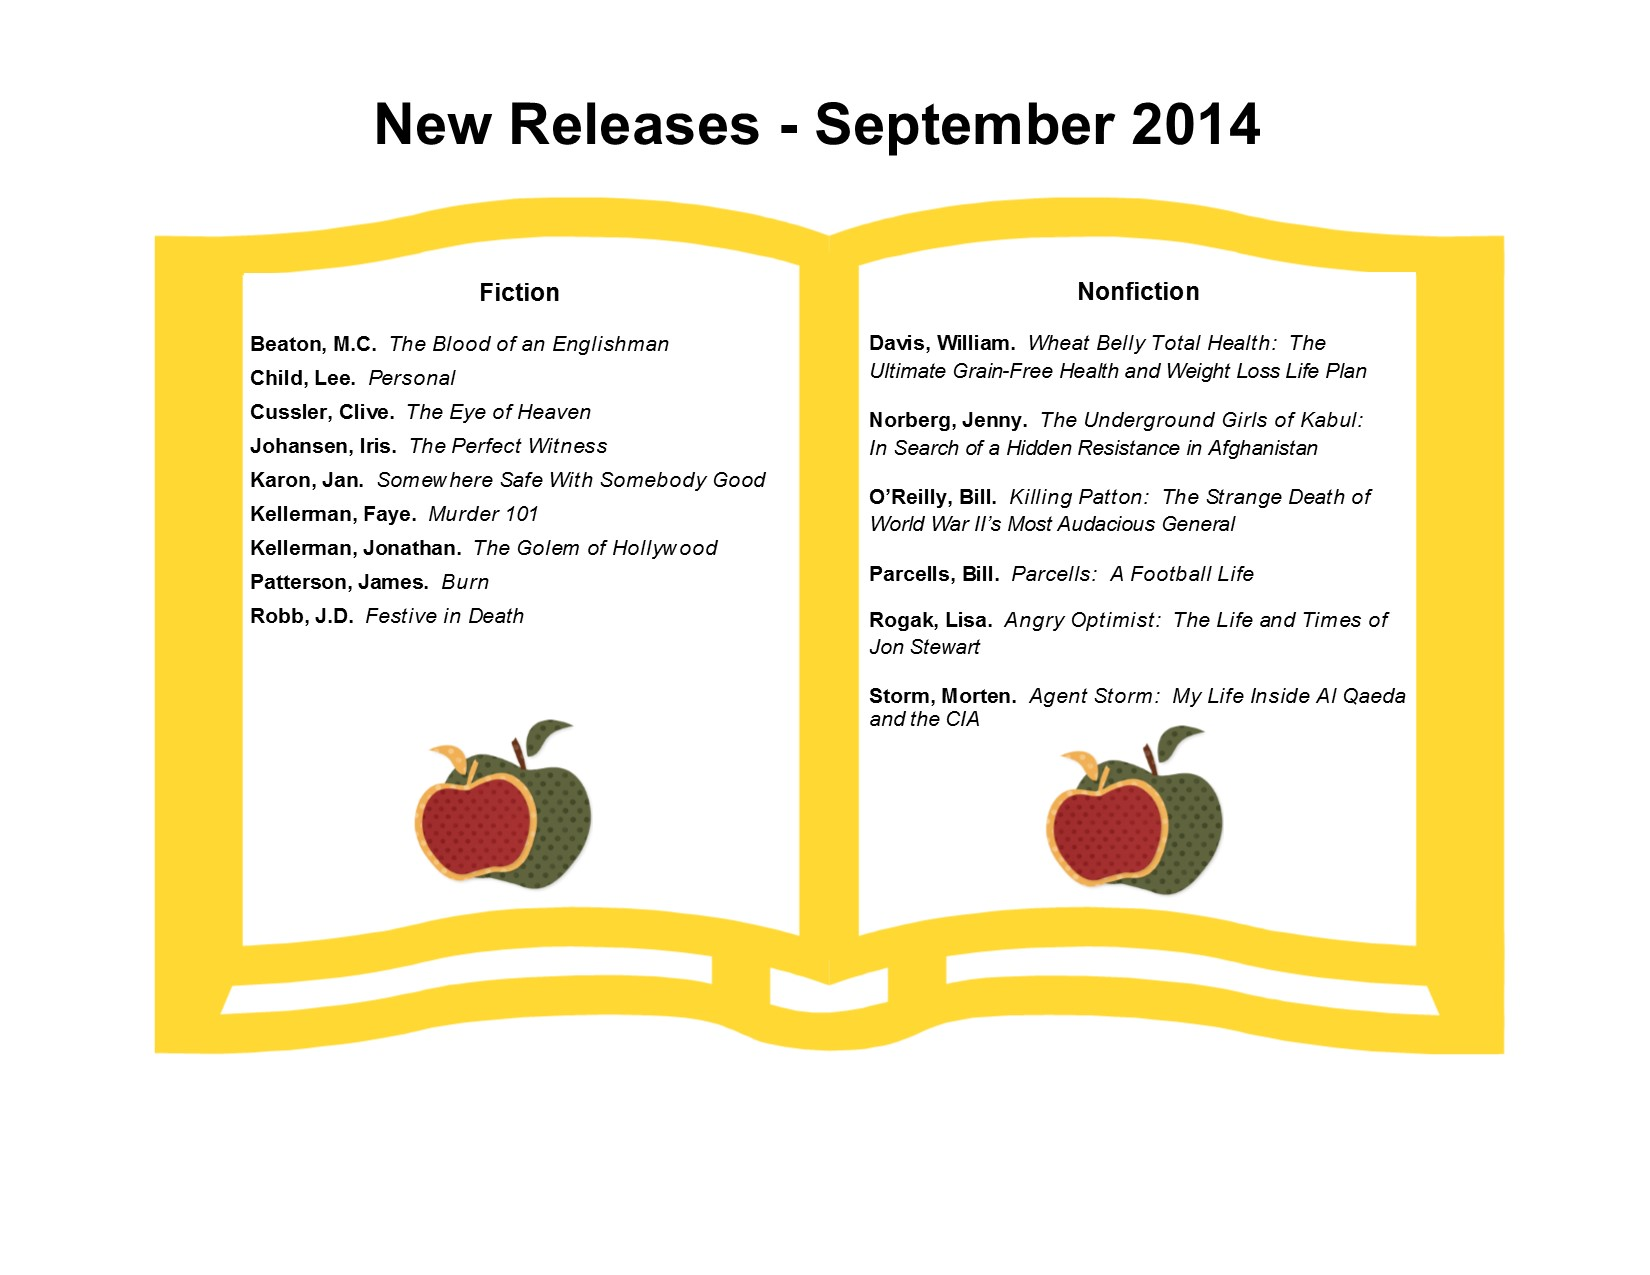 New Releases 9-14